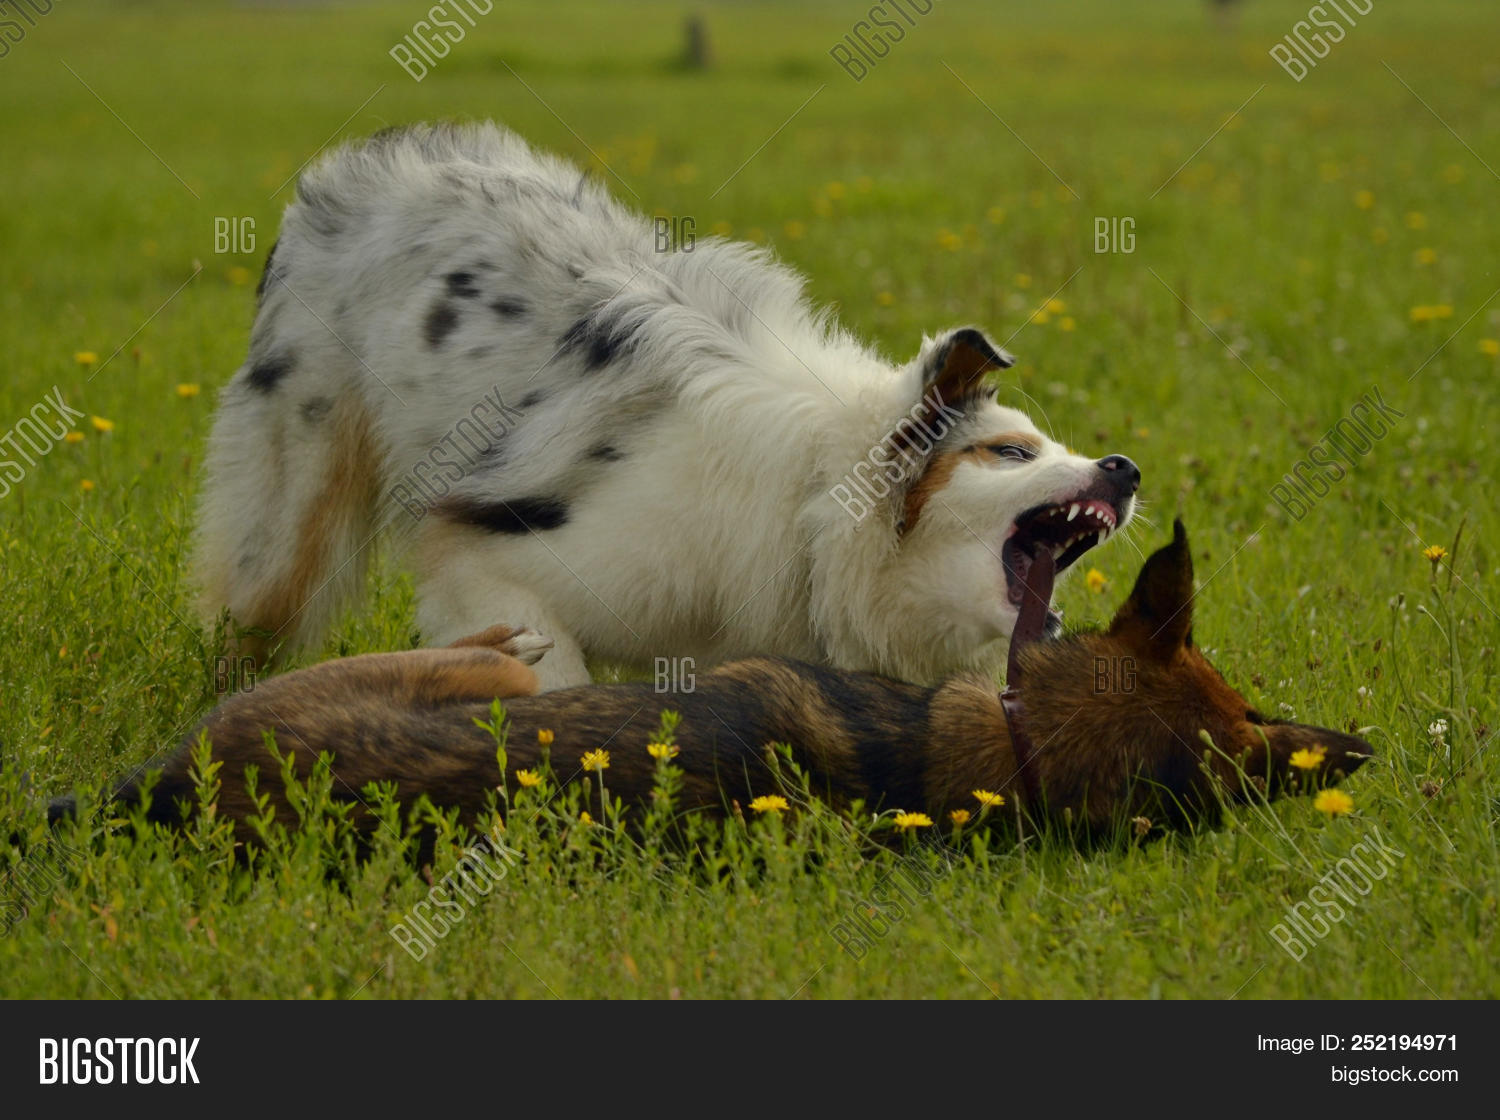 Dogs Play Each Other Image Photo Free Trial Bigstock